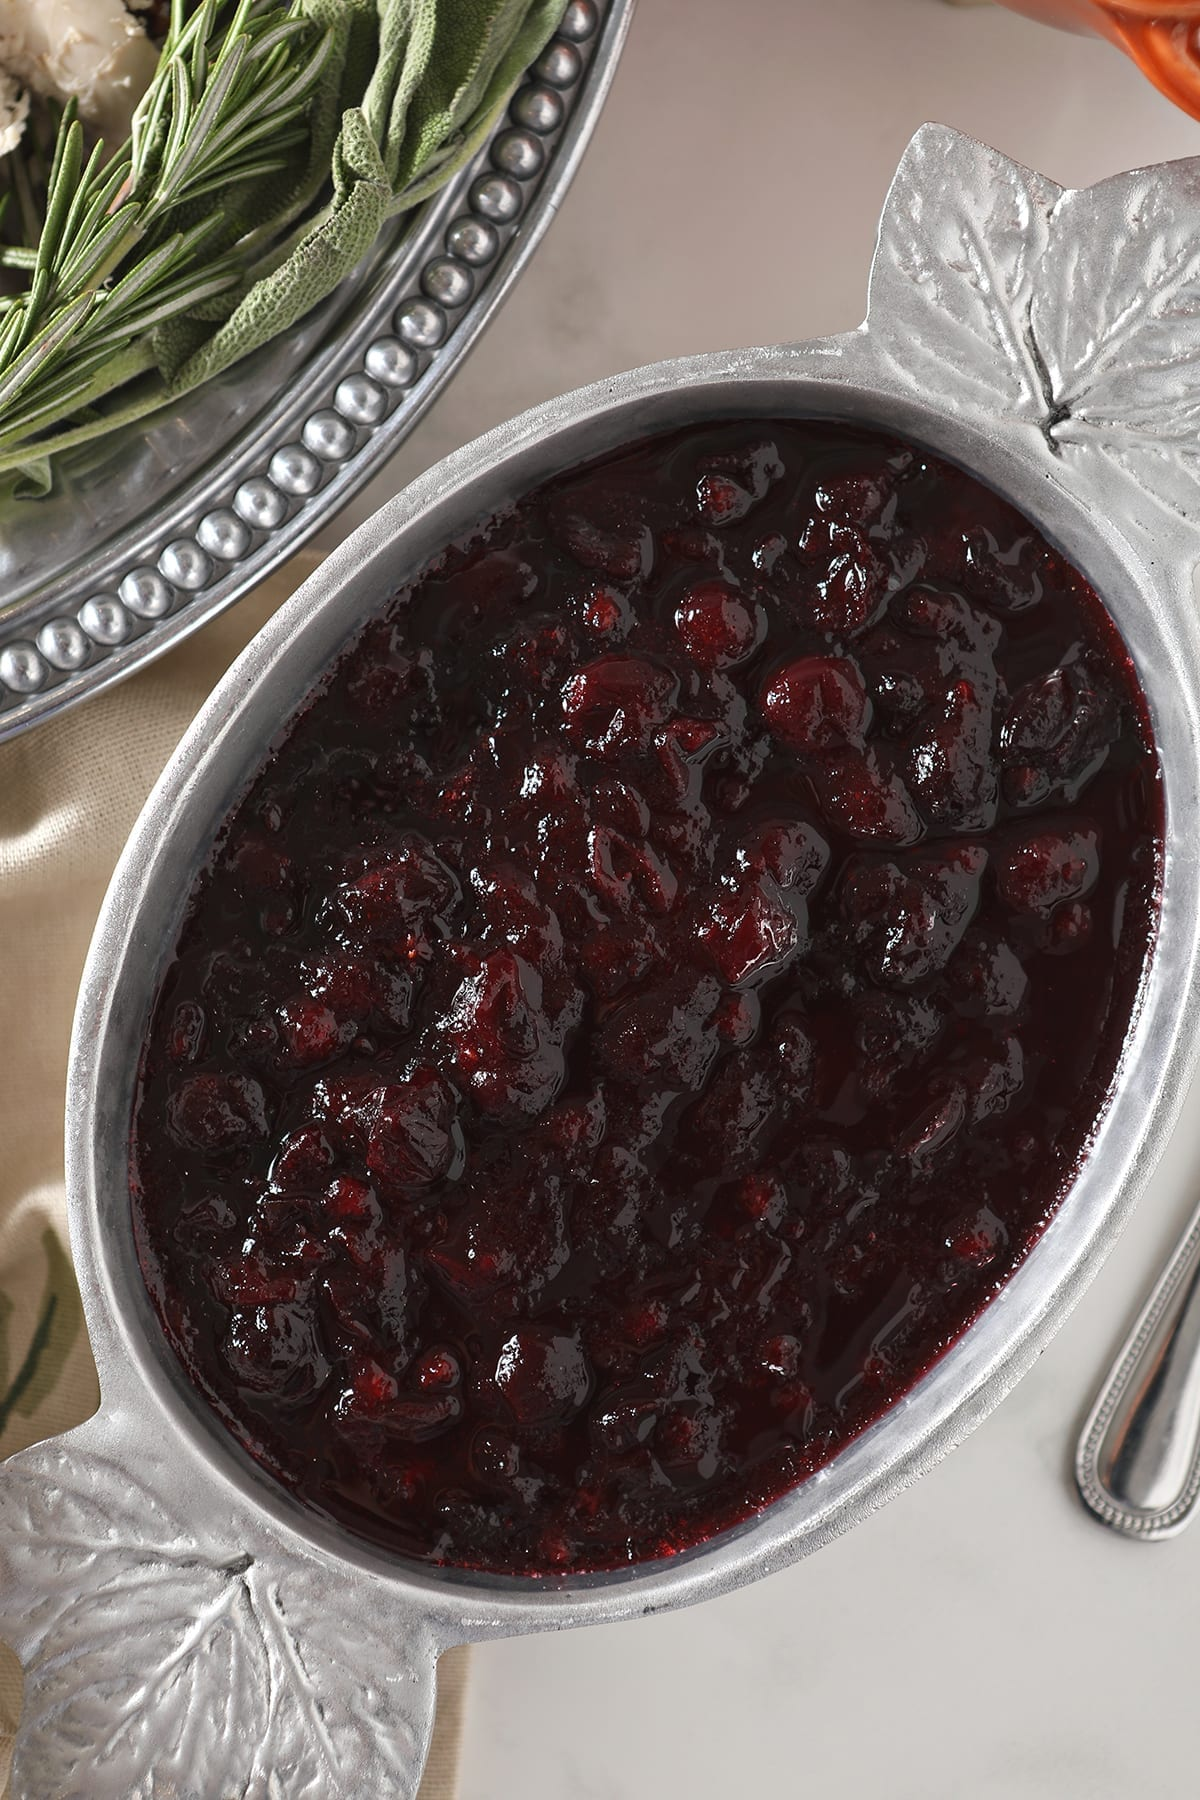 Close up of chilled spiced cranberry sauce in a silver serving bowl with maple leafs on the corners